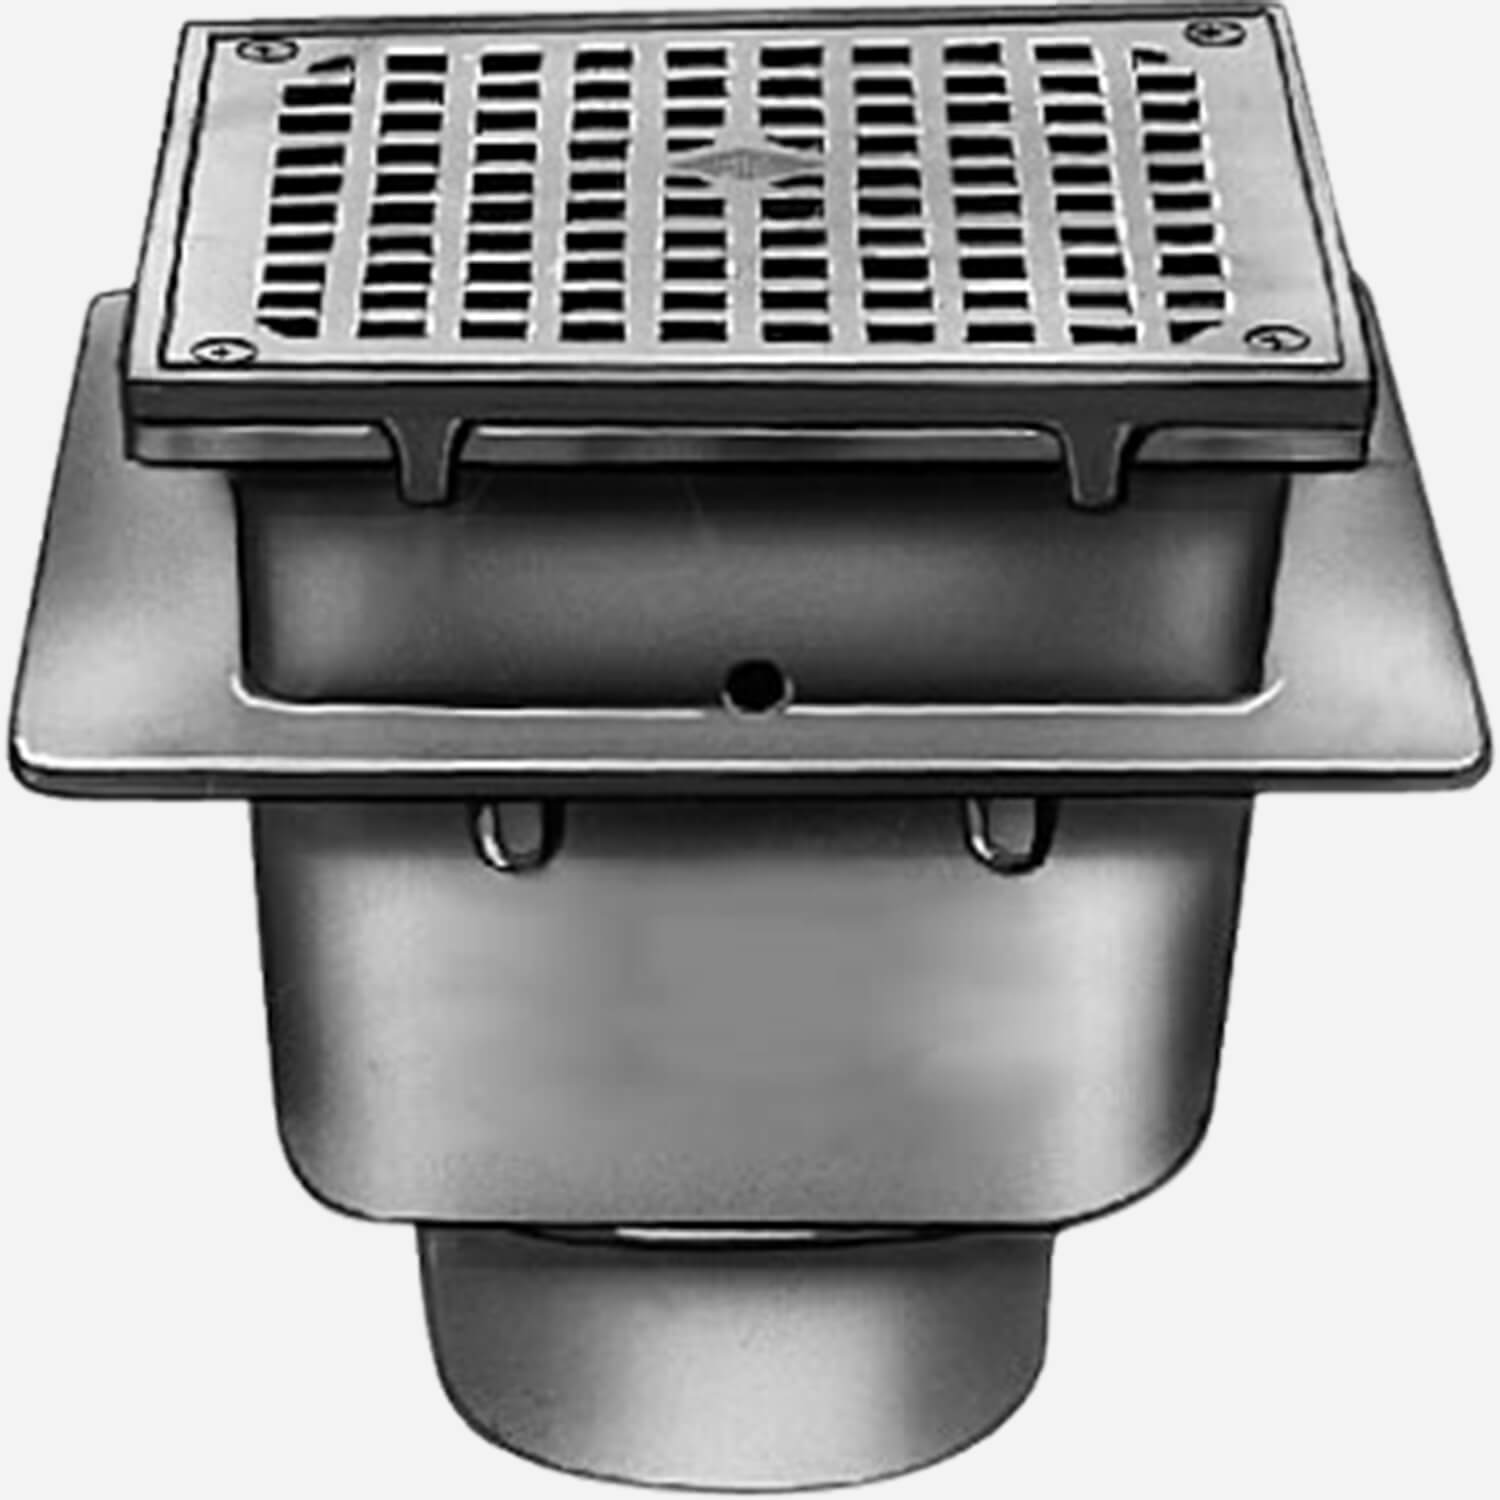 Sani-Ceptor® Sanitary Acid Resistant Coated Sanitary Floor & Indirect Waste Drains with Medium Receptor and Square Nickel Bronze Top